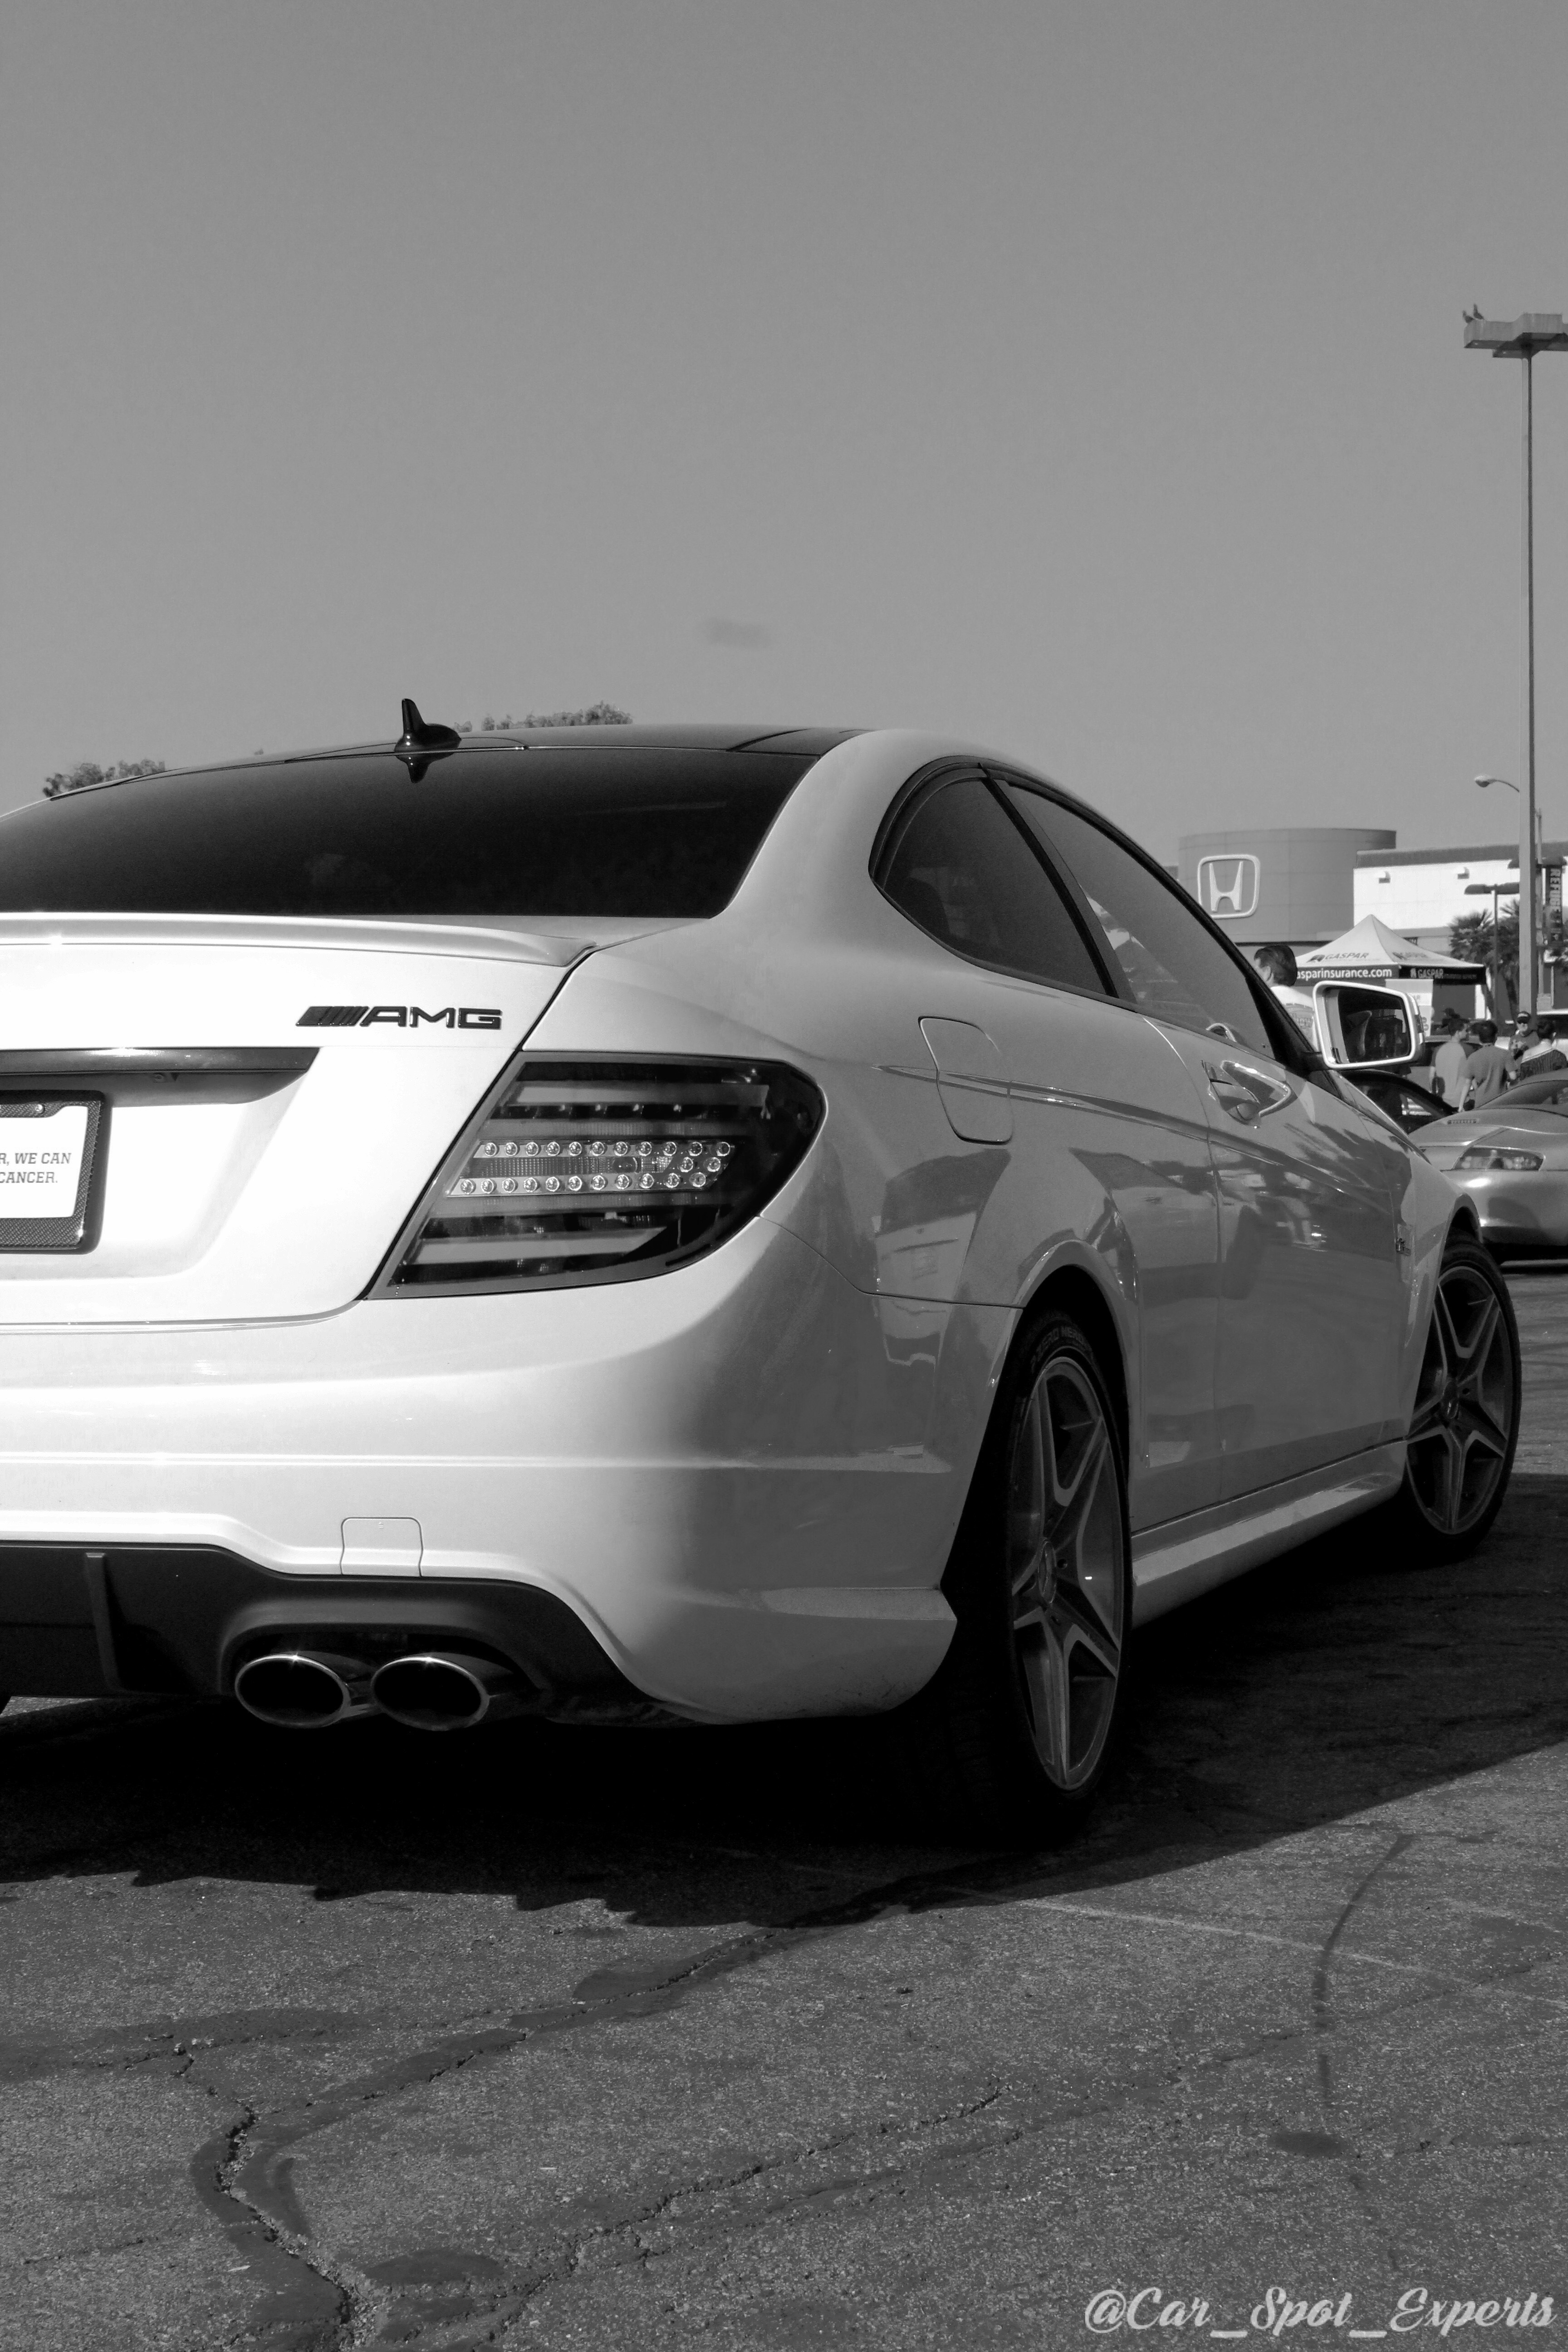 C63 Amg Wallpaper For Iphone Ig Car Spot Experts